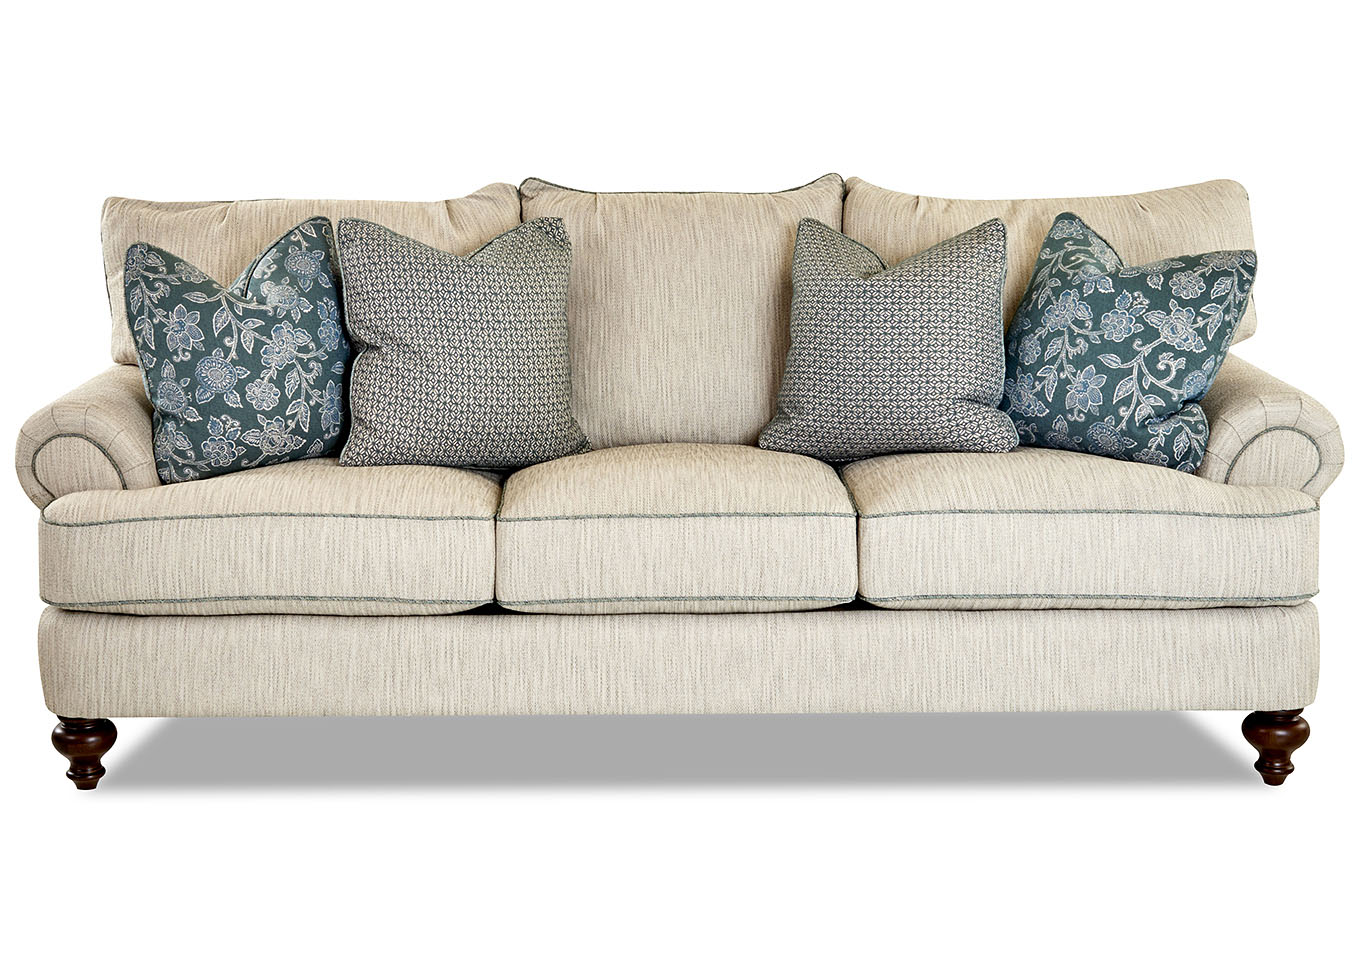 Ashworth Bailey Linen Stationary Fabric Sofa,Klaussner Home Furnishings